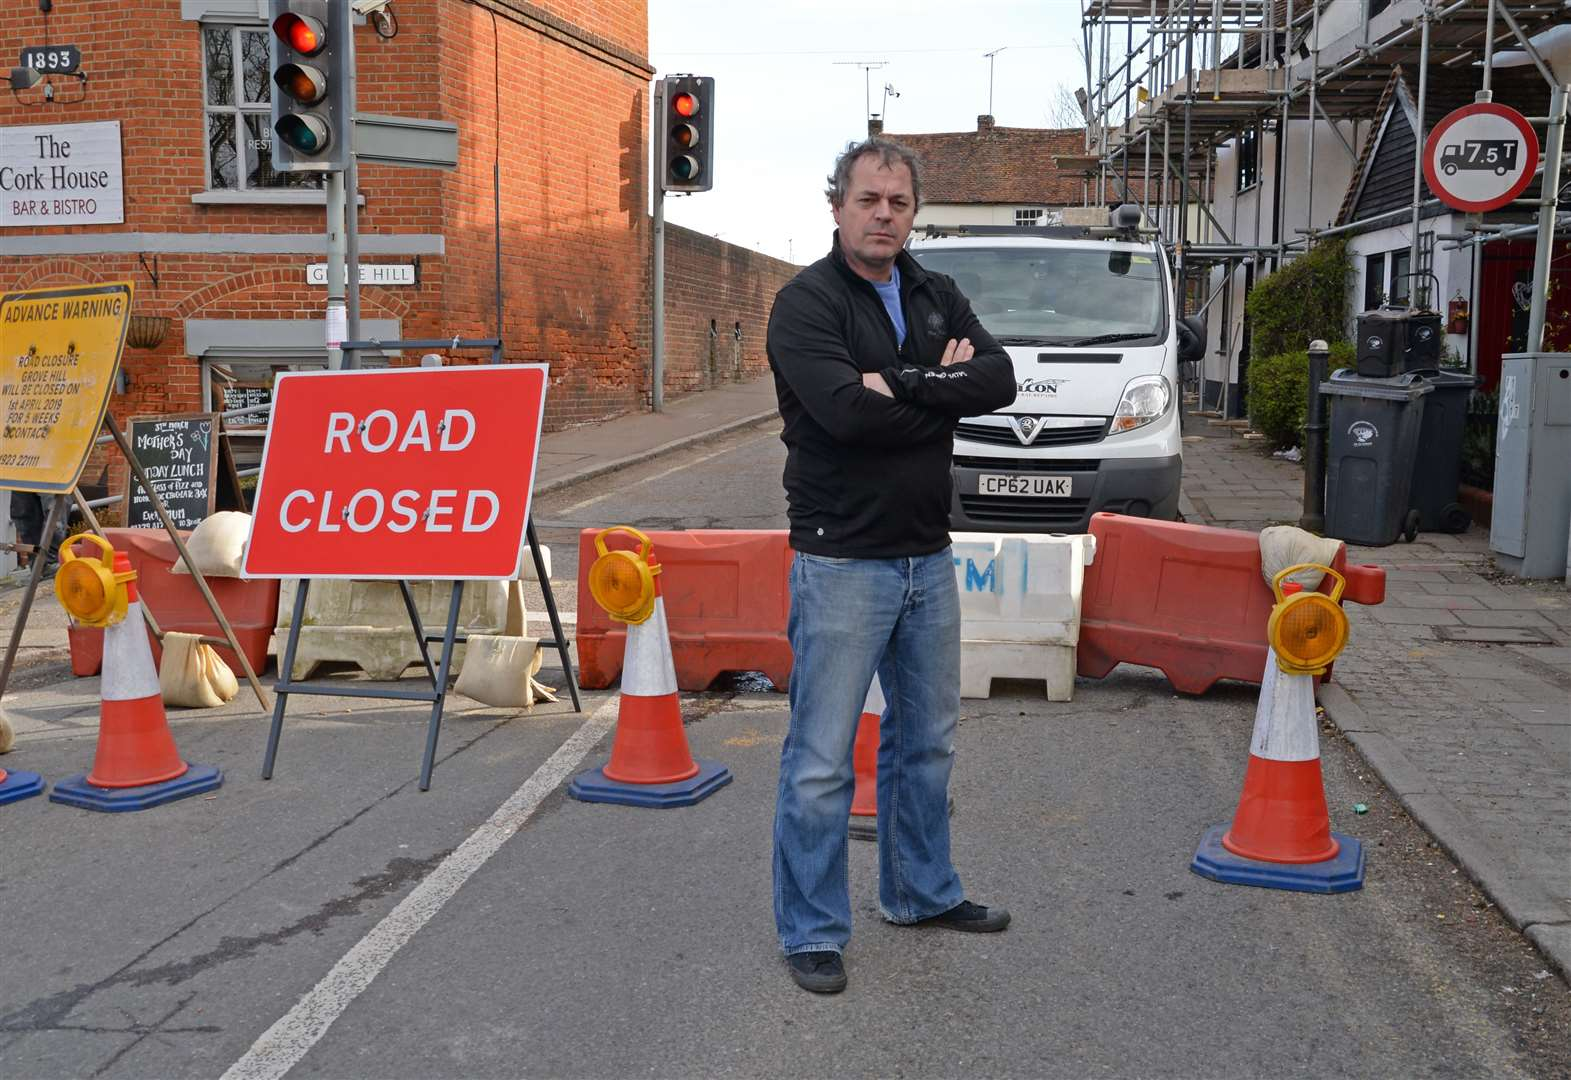 Stansted road shut for repairs to 400-year-old house hit by wide load